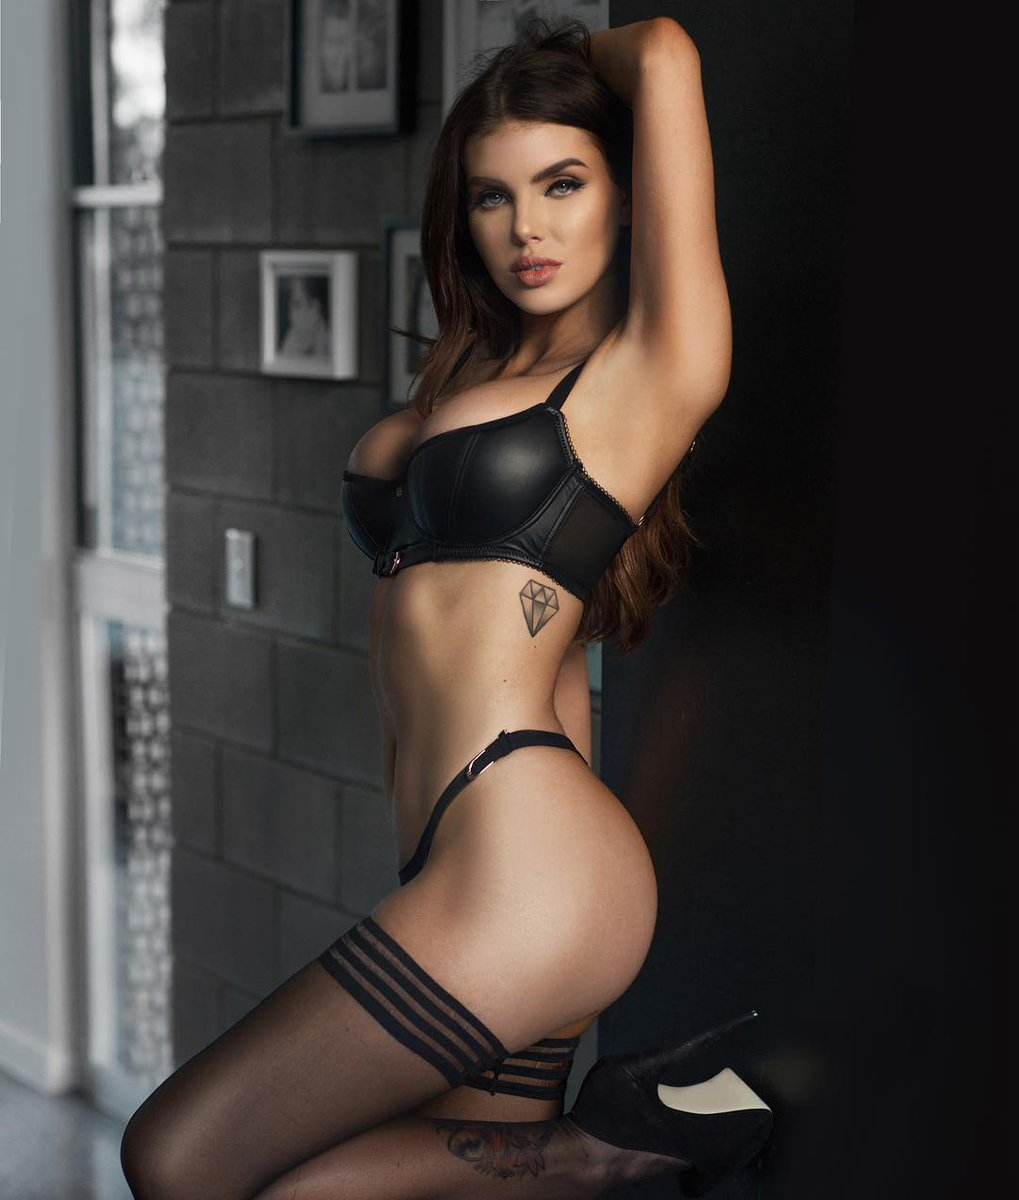 Pictures Nicole Thorne nudes (33 foto and video), Topless, Fappening, Feet, braless 2015